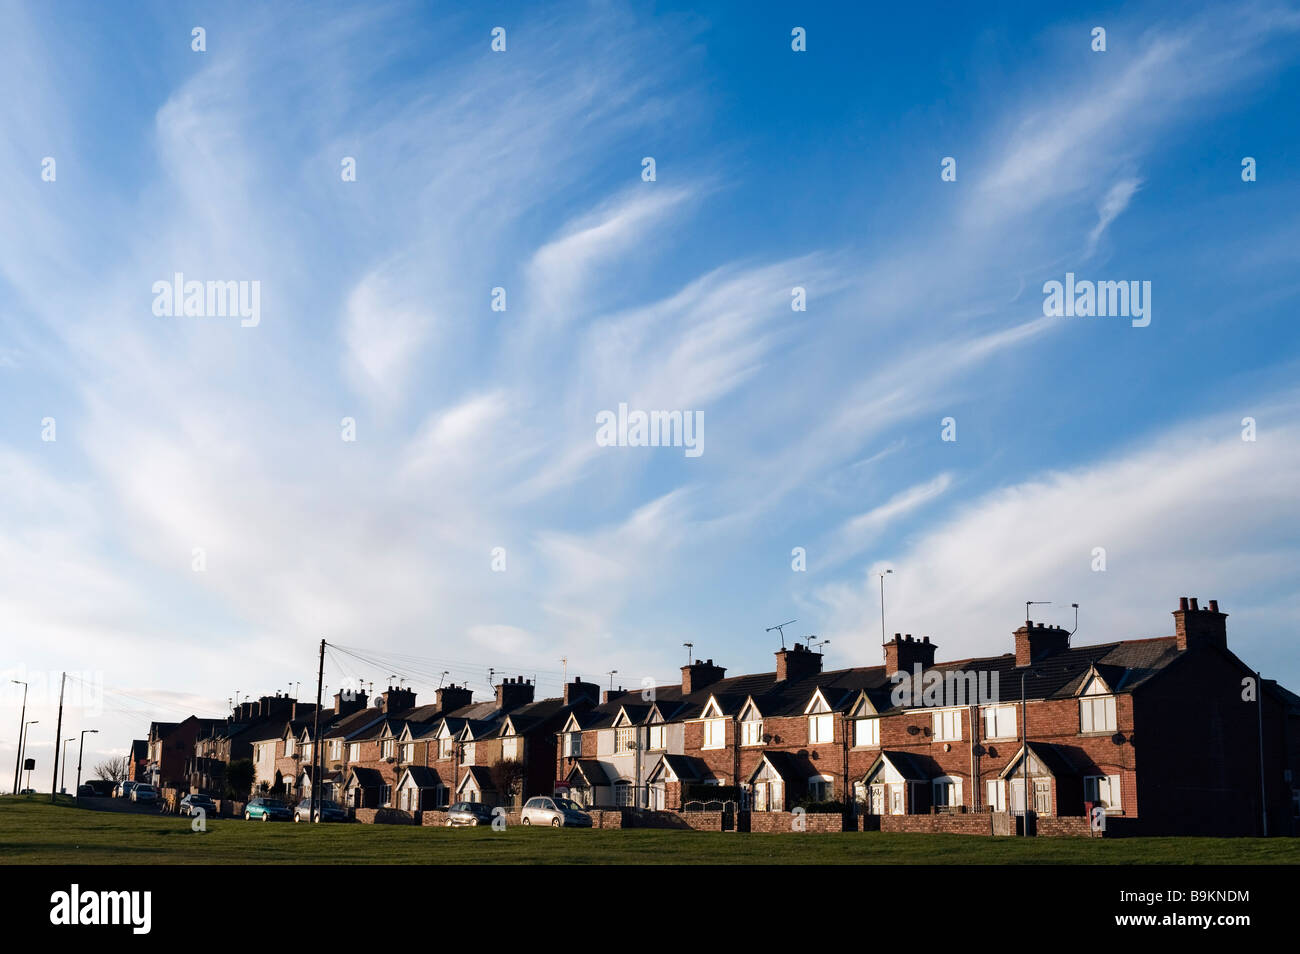 A row of terraced housing at Maltby,'South Yorkshire', England,'Great Britain' - Stock Image